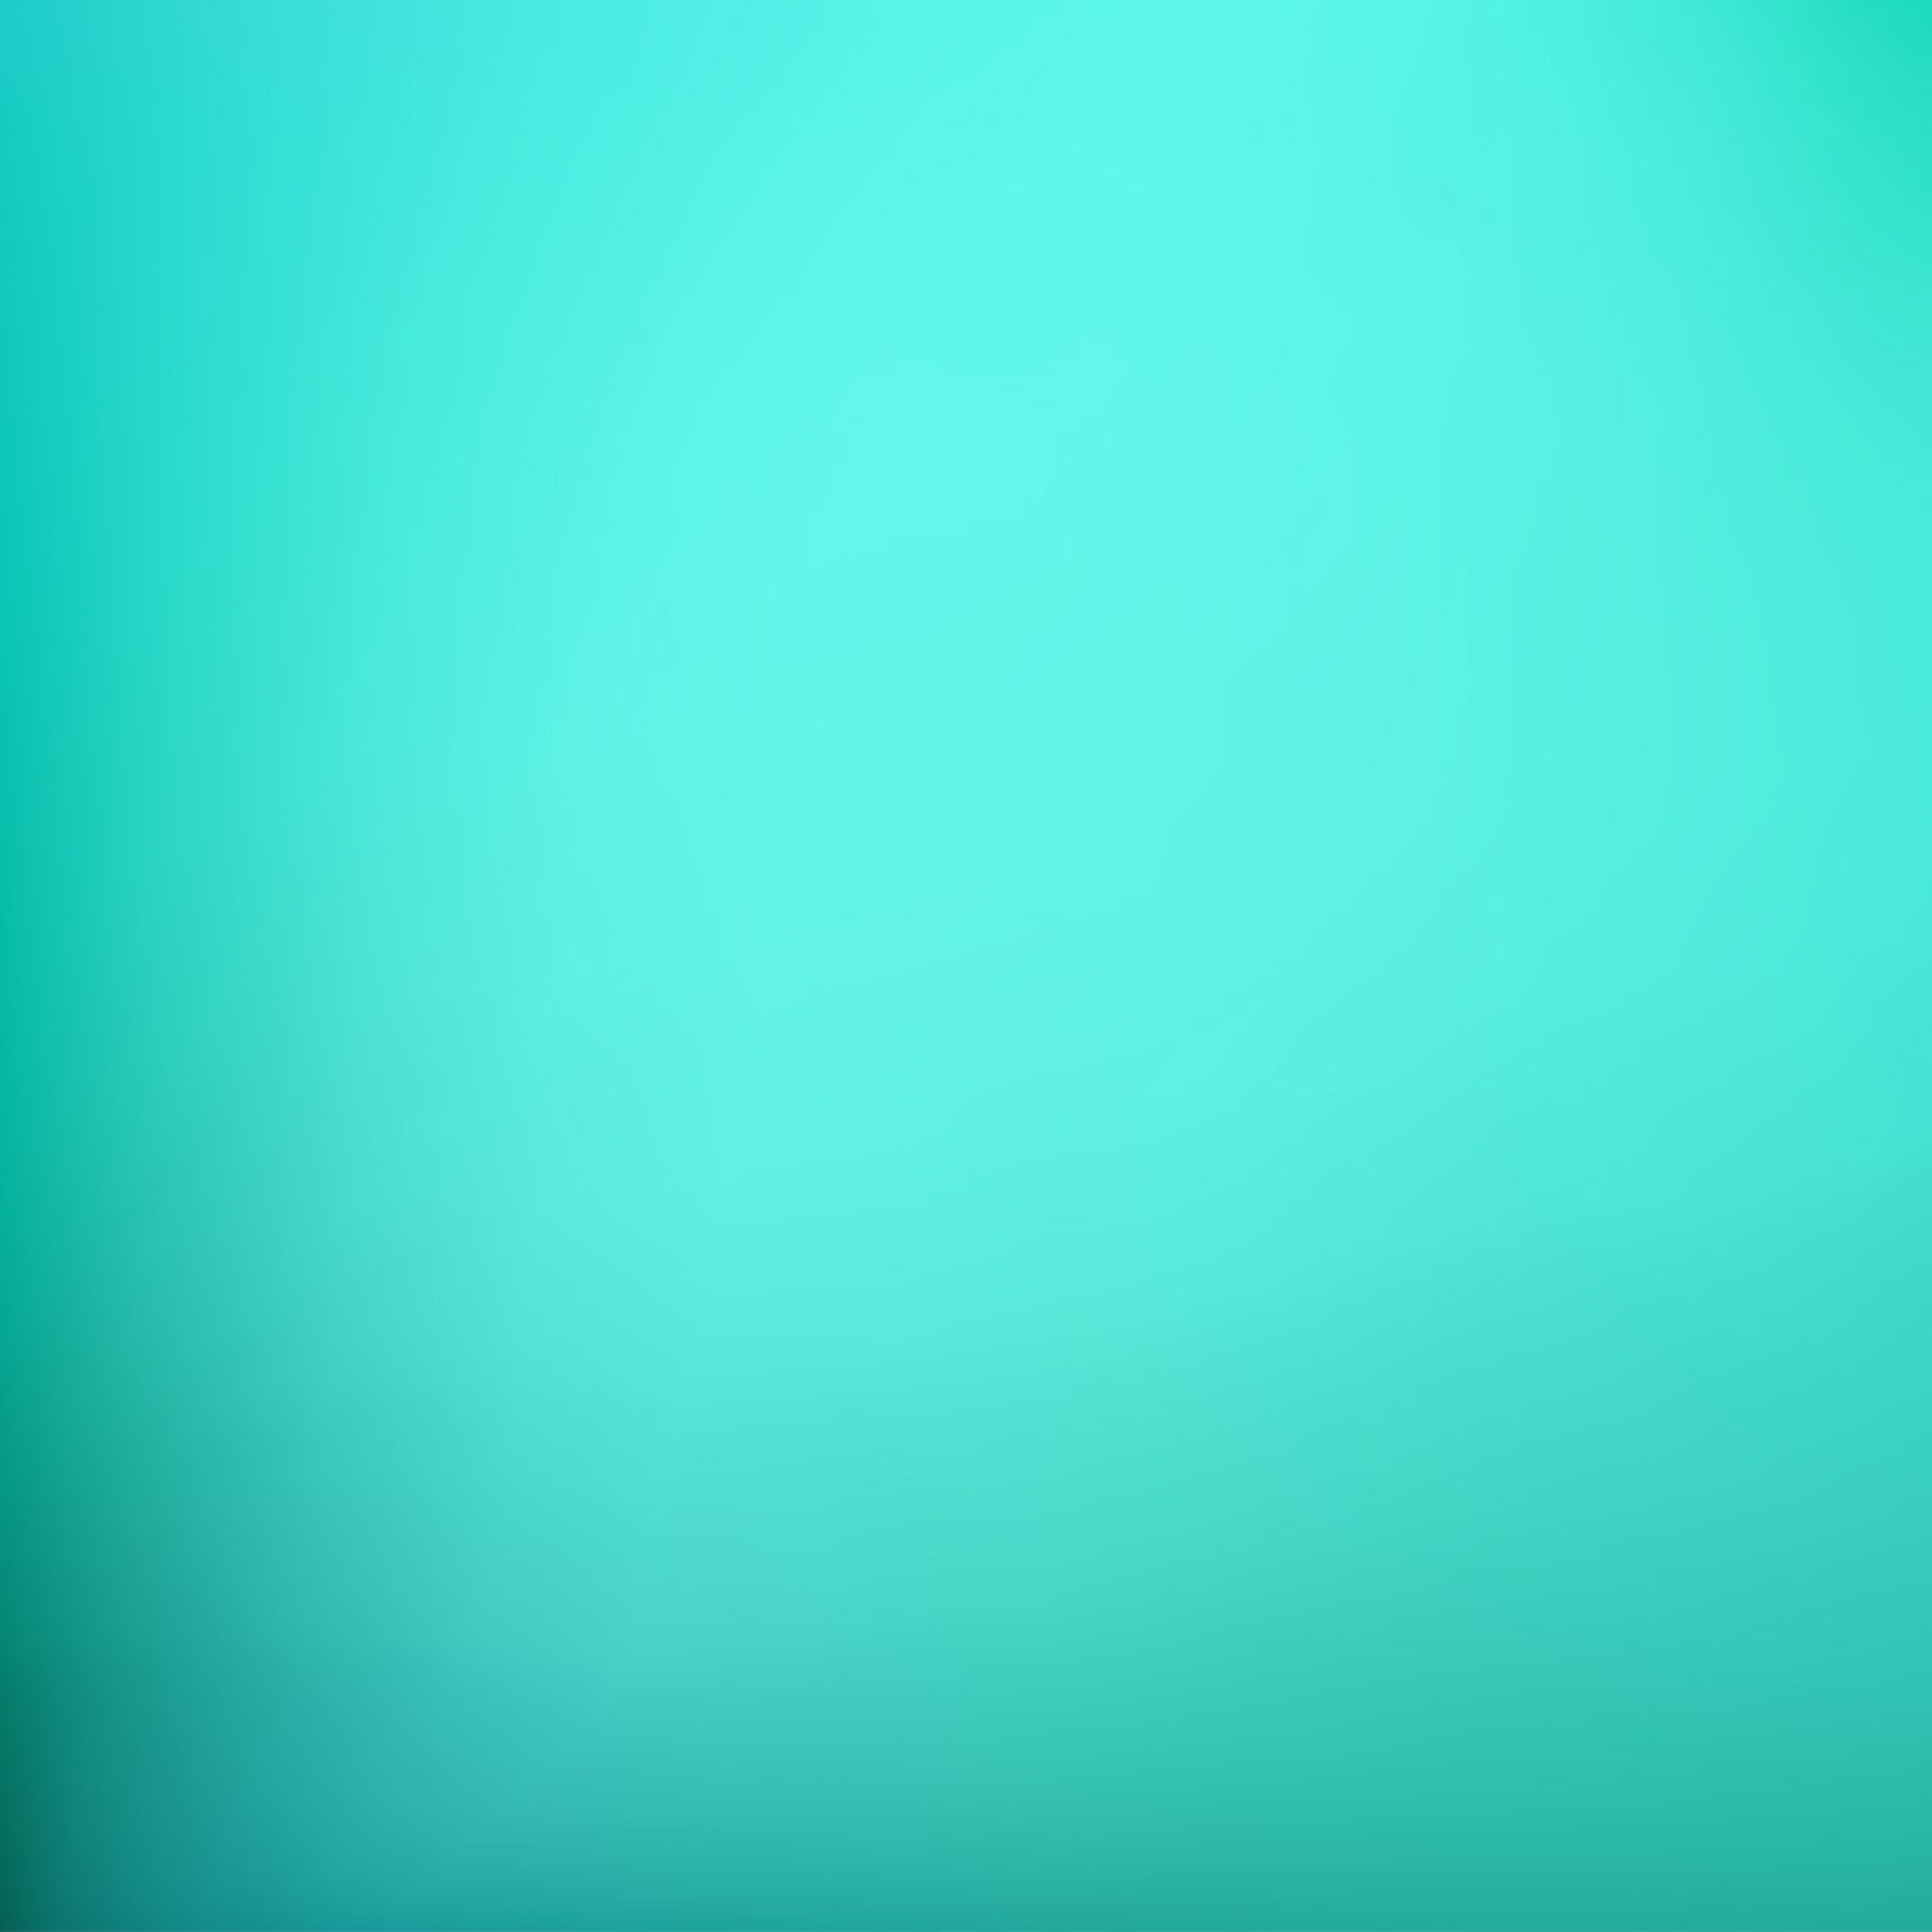 Fox Mint Green Abstract Photos Vinyl Backdrop for Photography